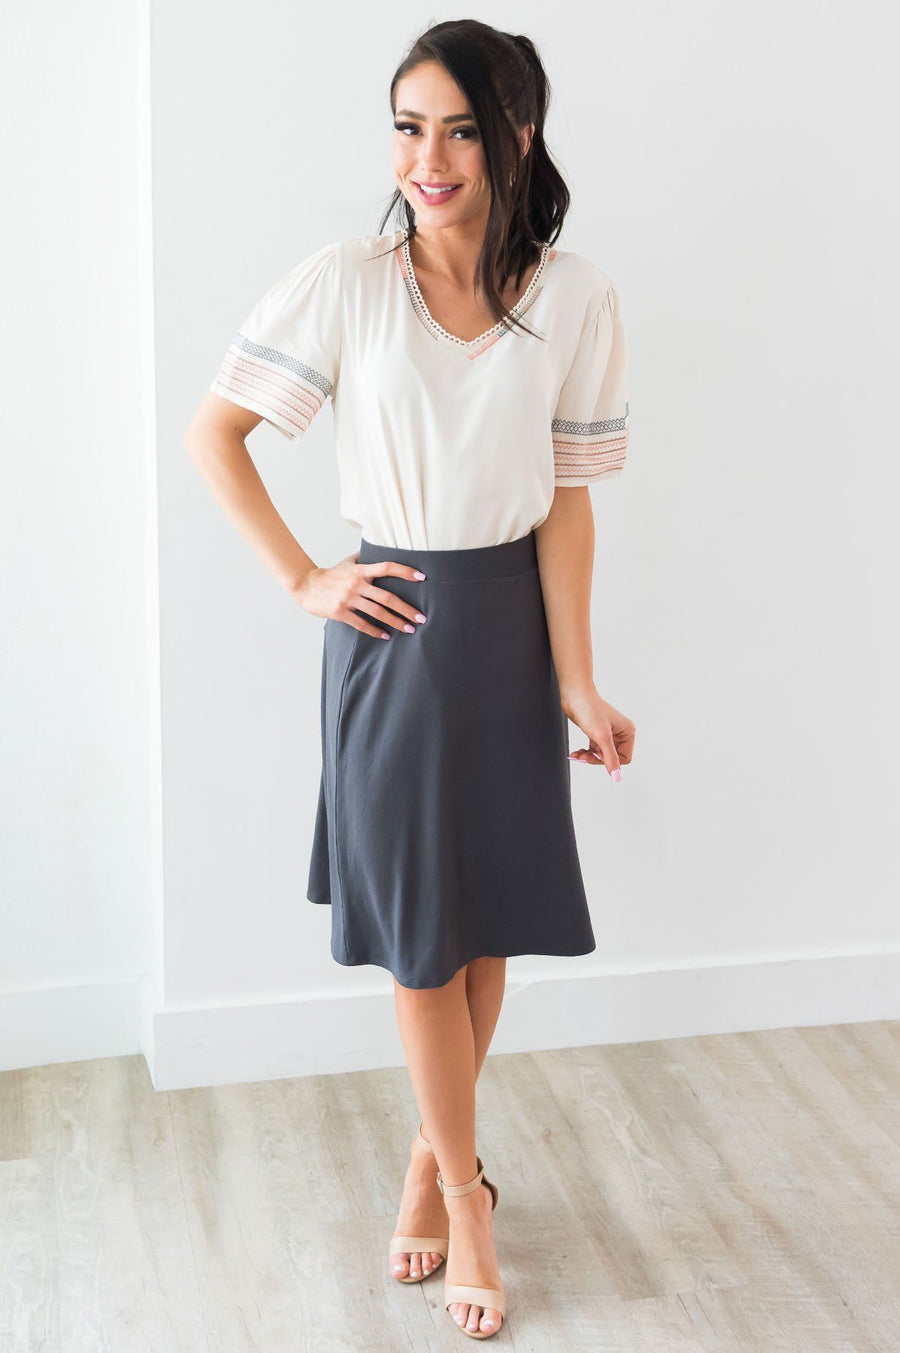 Crushing On You Modest A-line Skirt